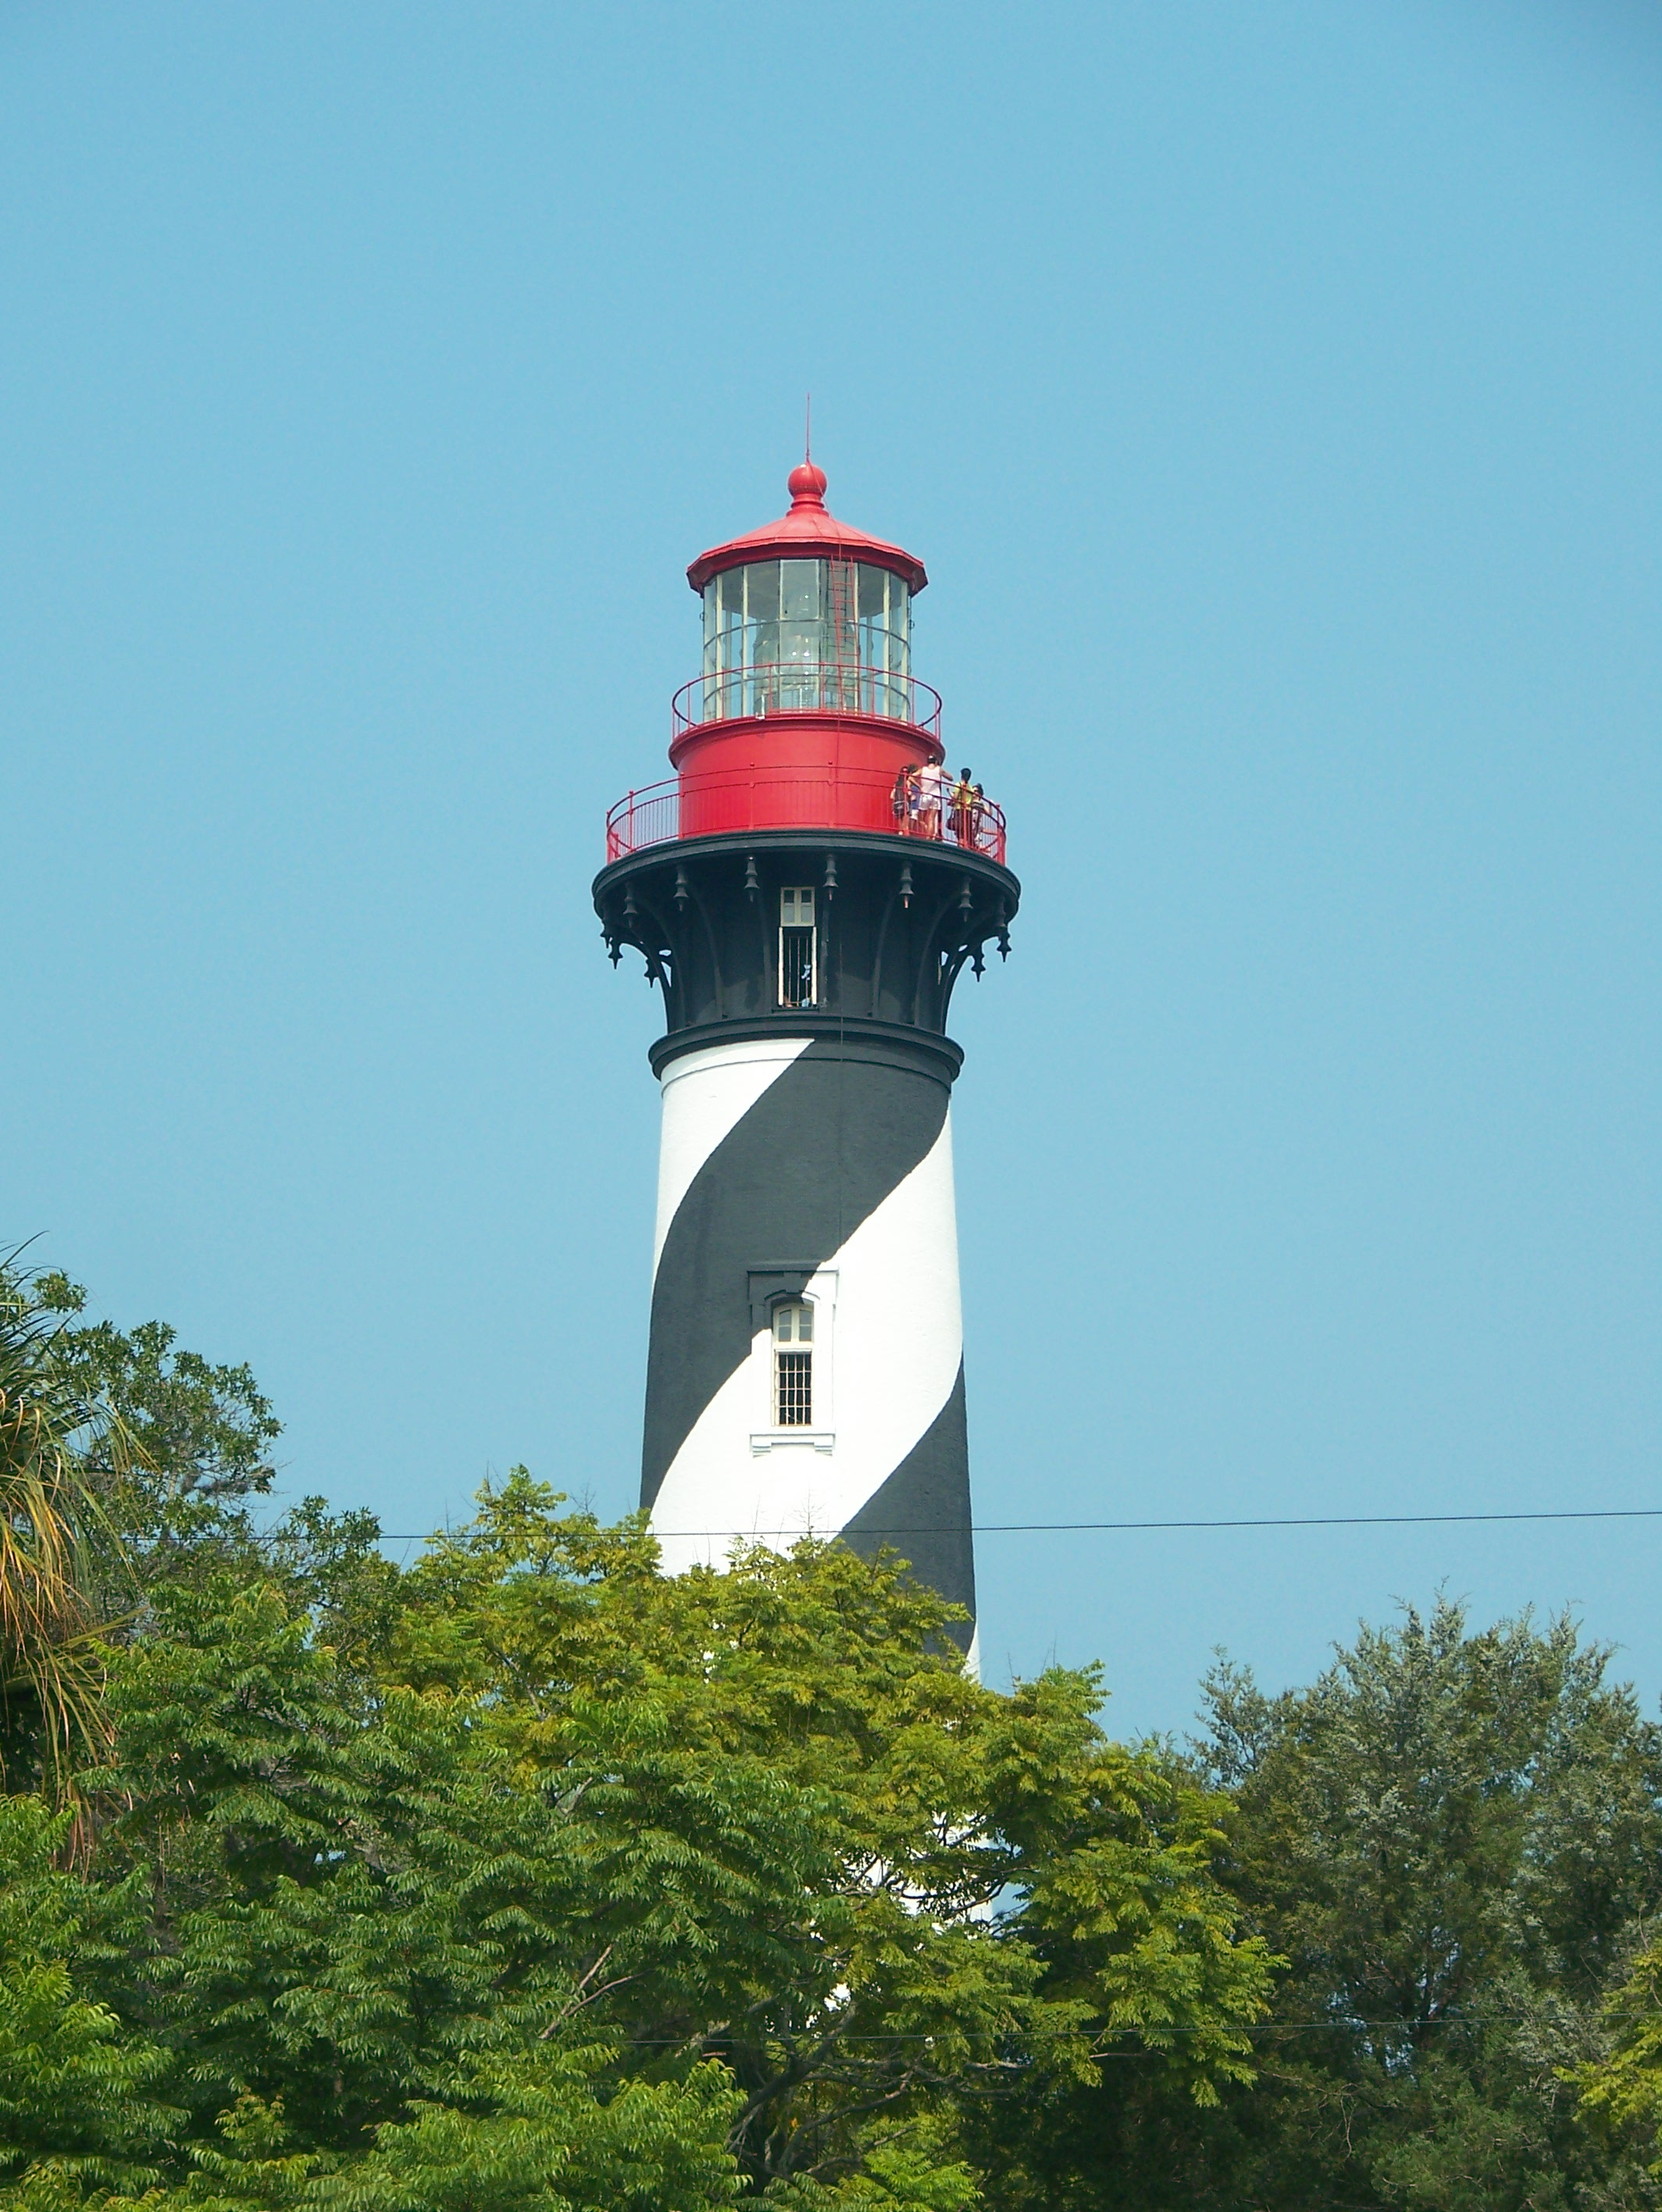 St. Augustine Lighthouse as viewed from the road